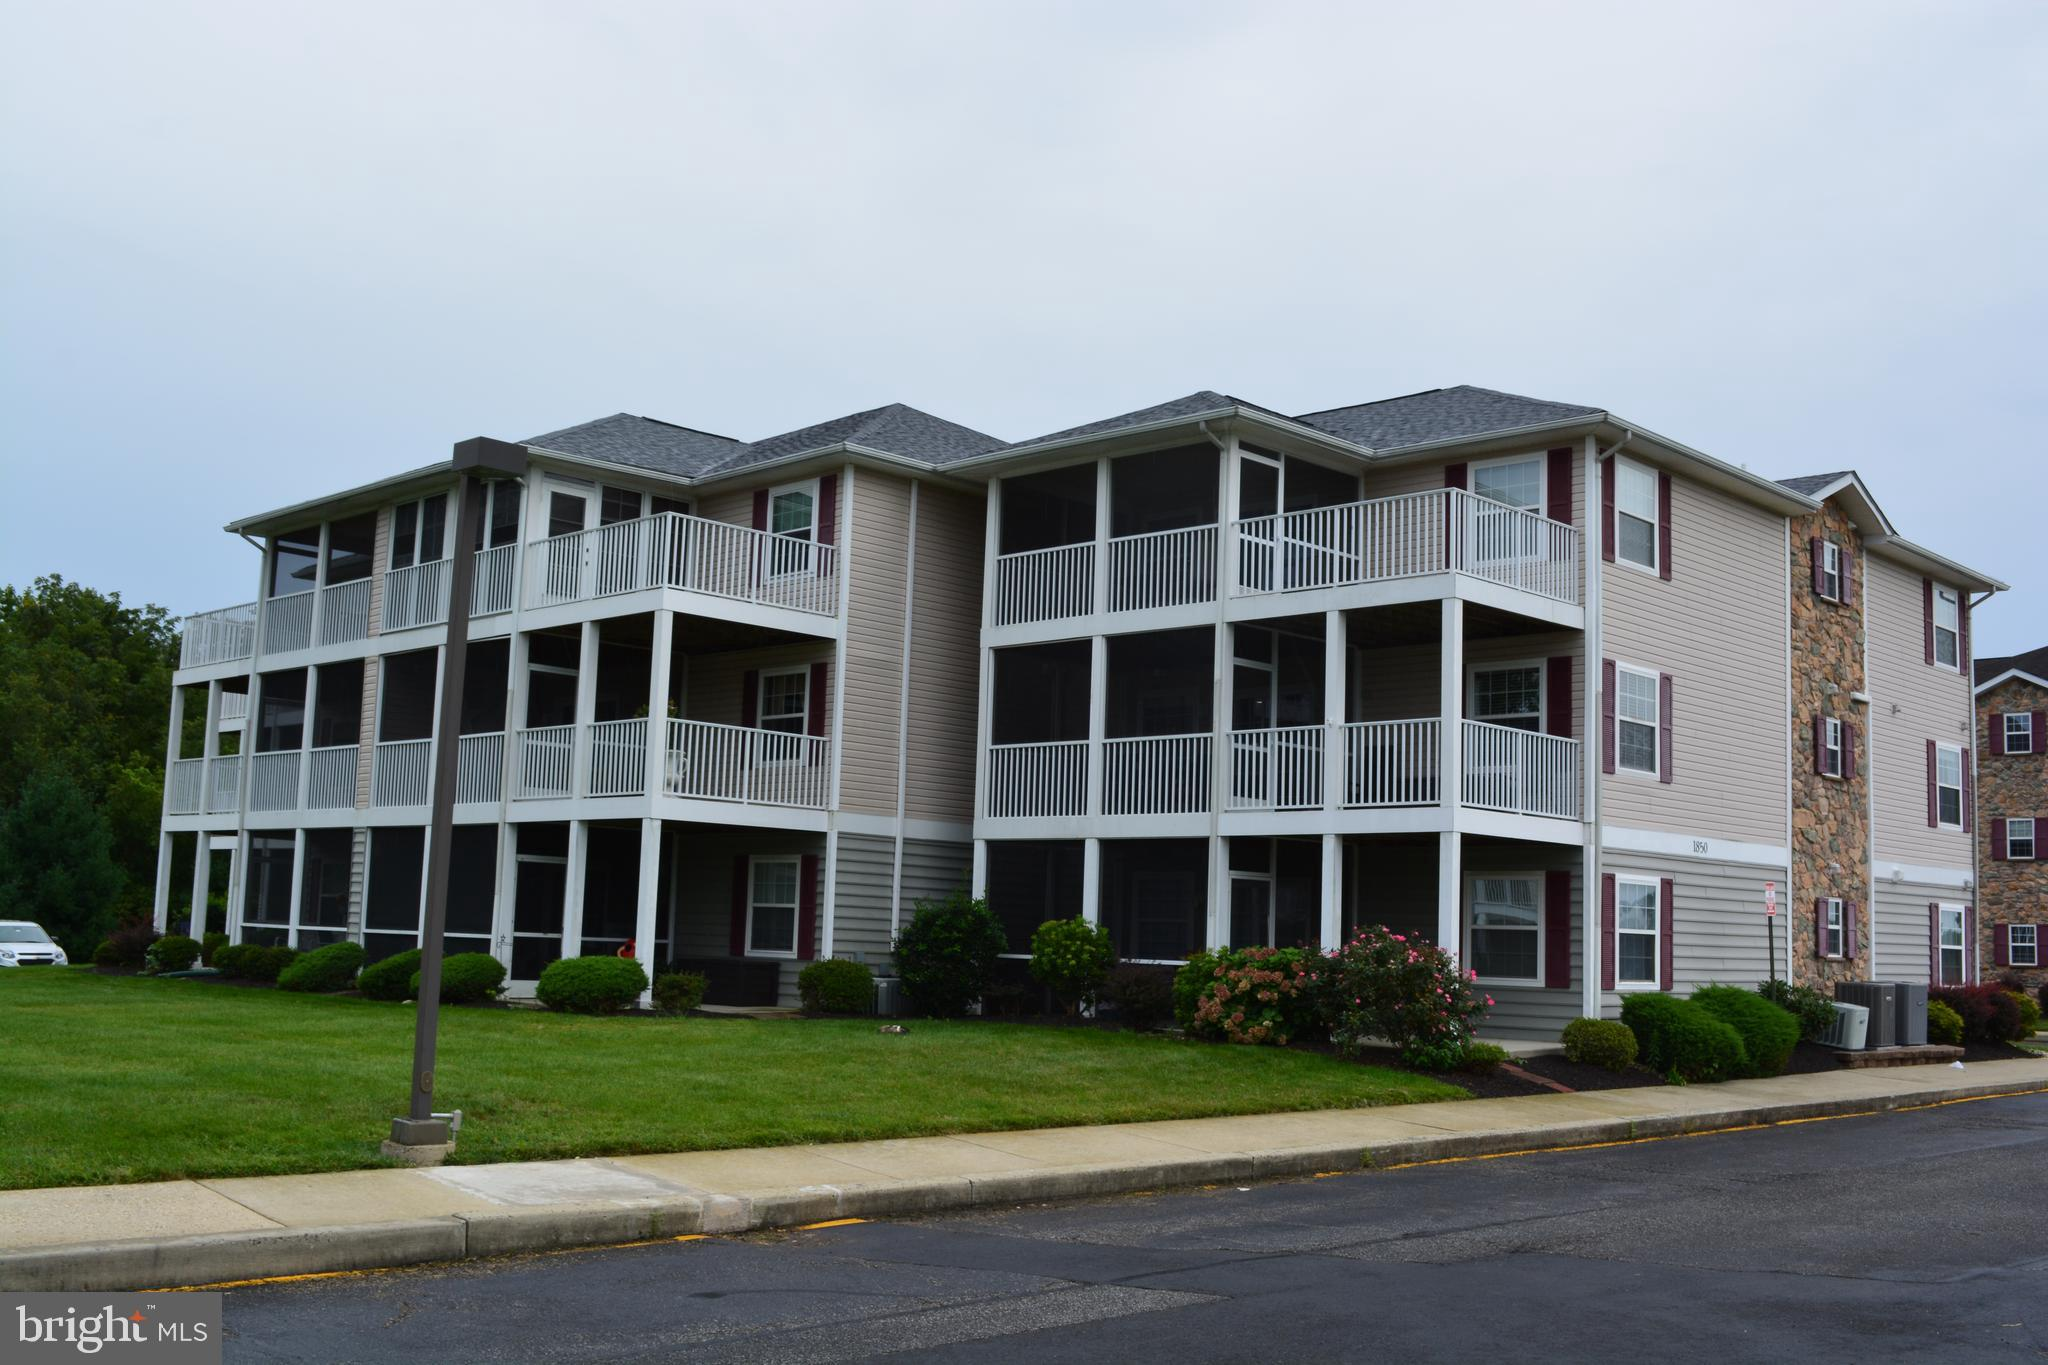 3 Bedrooms, 2 Full Bath Condominium within the Appoquinimink School District.  Bright and open floor plan with fireplace and large covered balcony.  Plenty of closet space including a large walk-in closet in the Master Bedroom.  Bathrooms have a double vanity and oversized wall mirrors.  Living room has recessed lighting, fireplace and access to the screened balcony, most of which is screen and open for unobstructed views of this awesome community.  Maintenance-free exterior, affordable condo living with an elevator make this home a must see.  Close to all commuting corridors for Baltimore, Wilmington and Philadelphia.